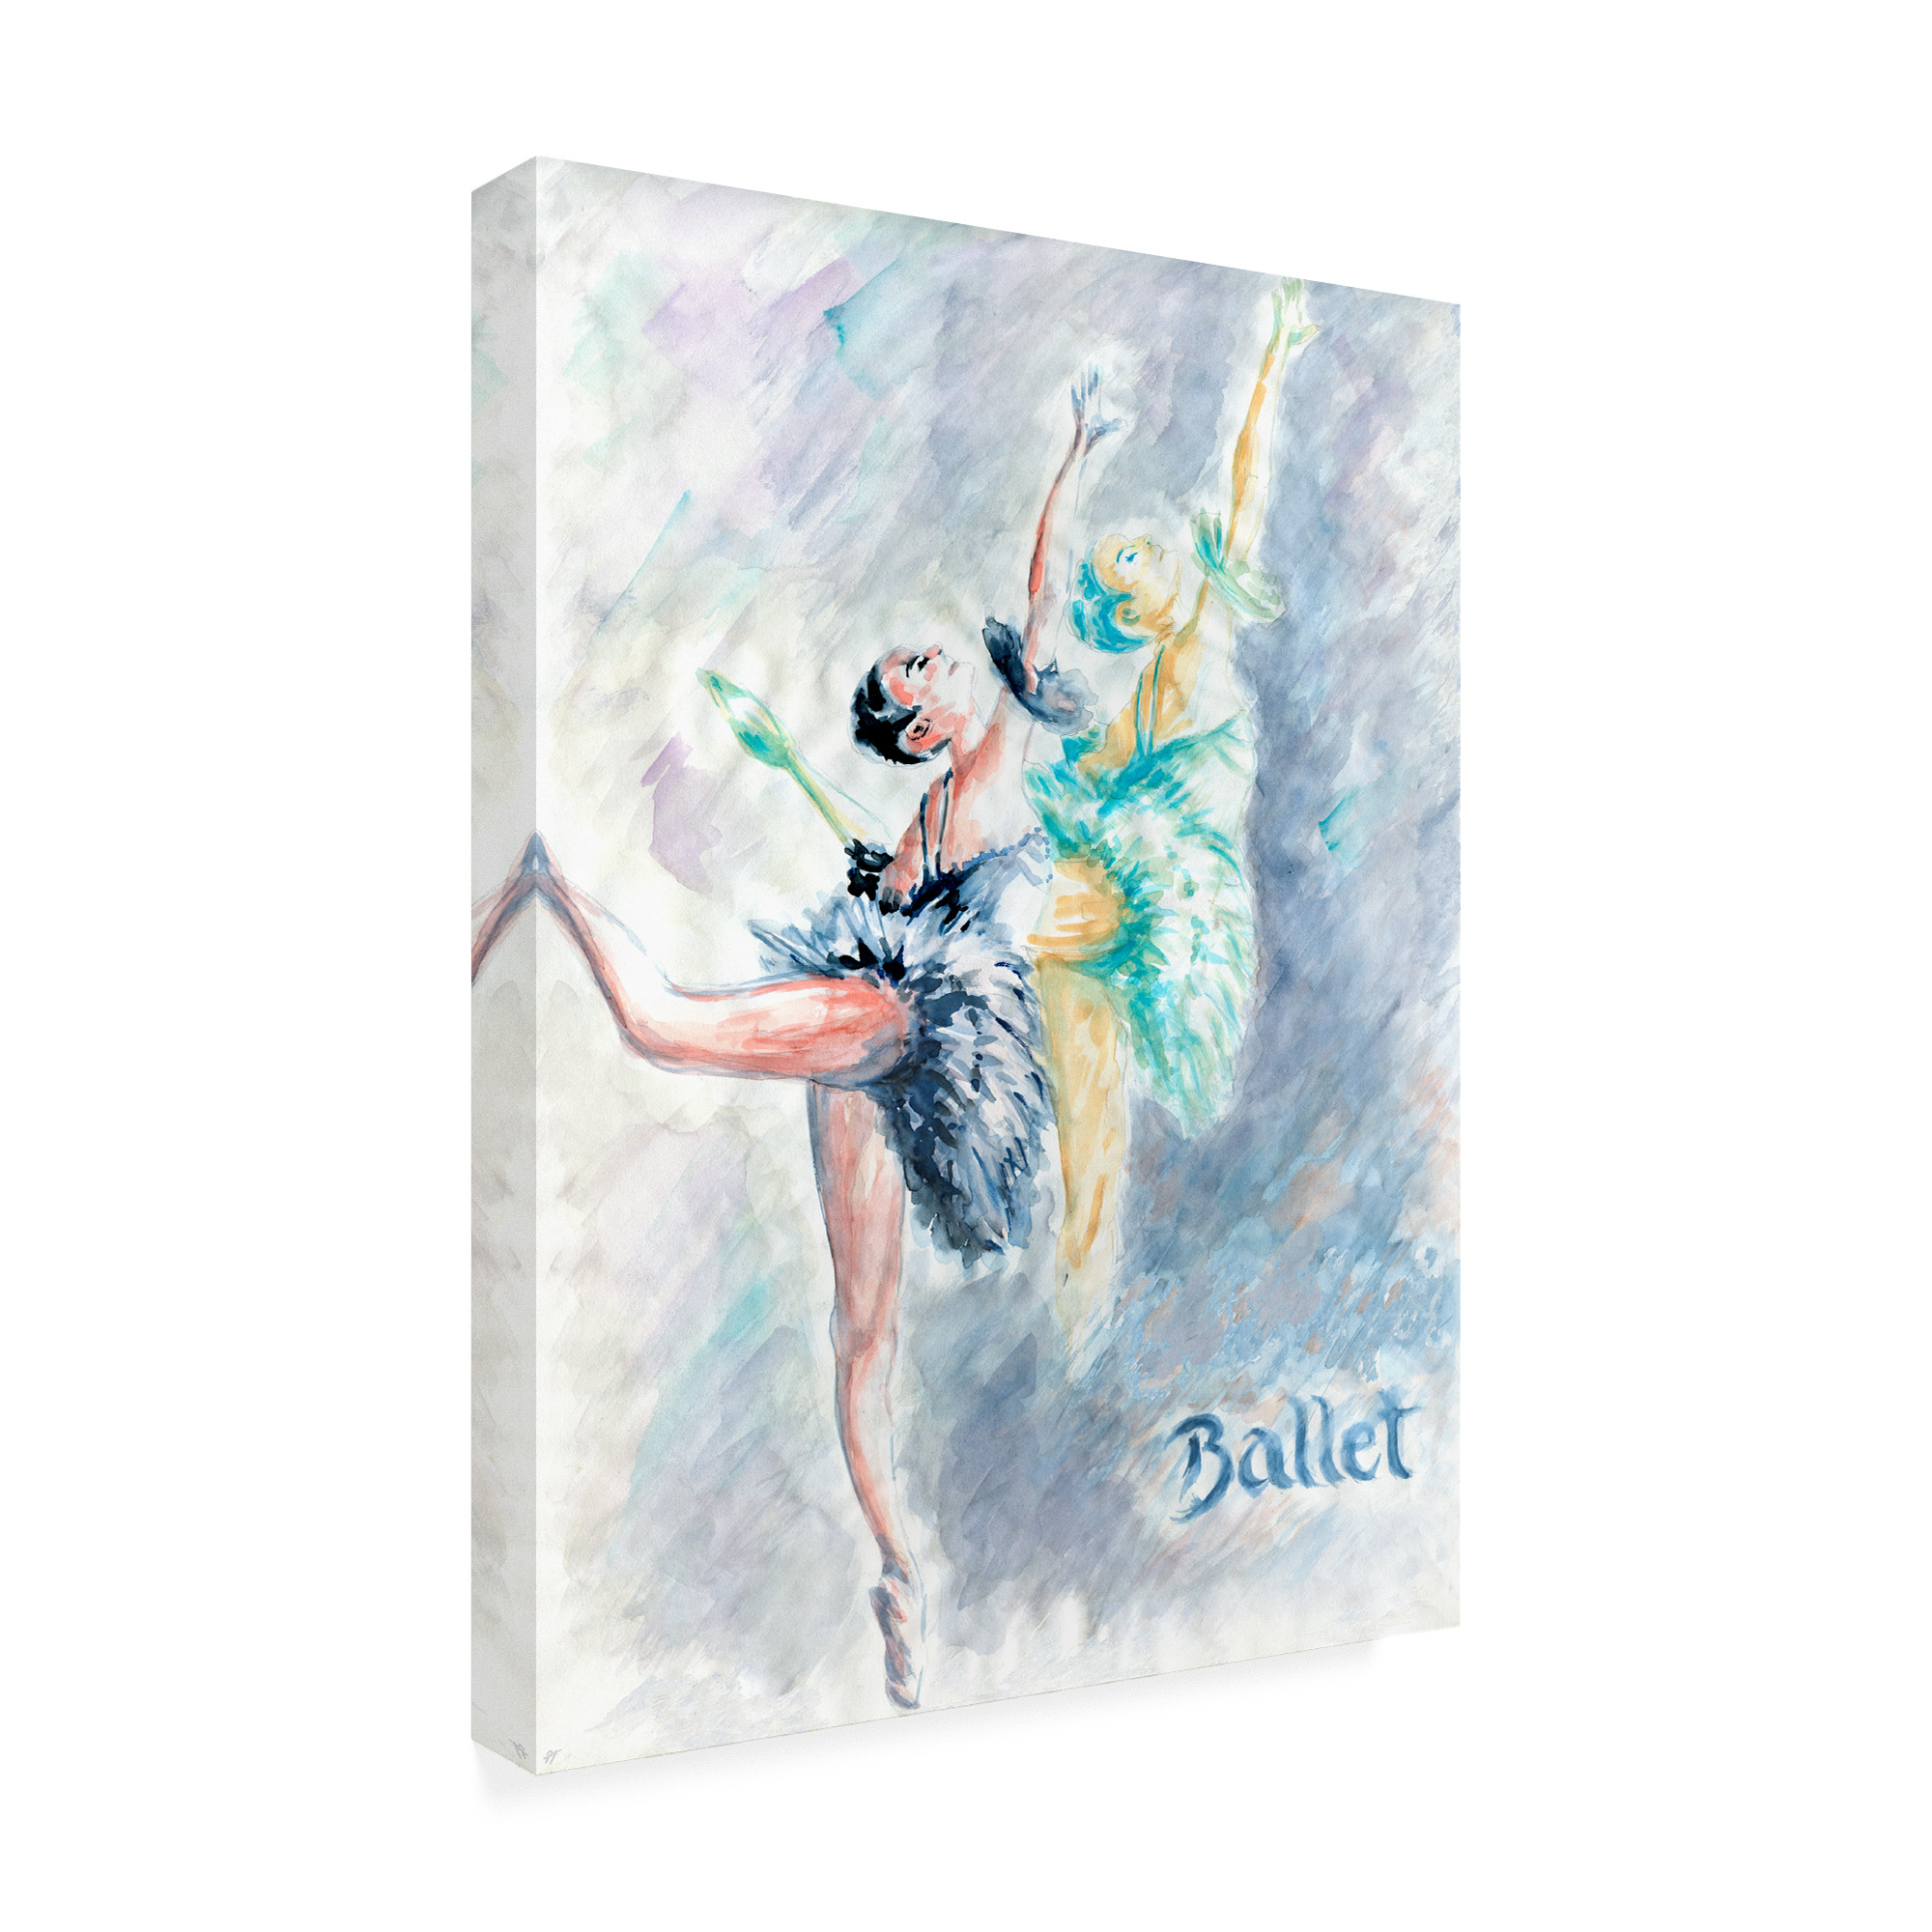 Ballerina Notebook /& Pencil Matching Set  New Ballet Gifts Dance Merchandise